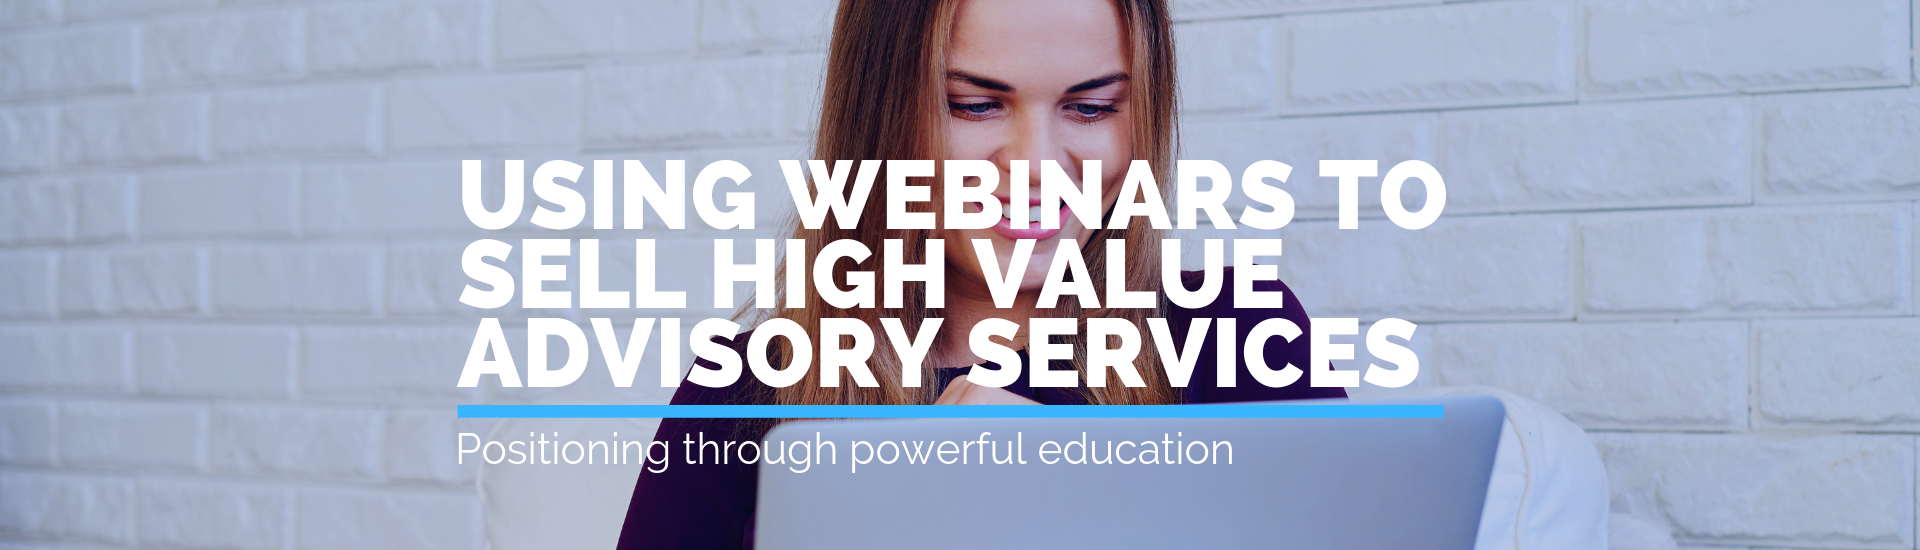 Using Webinars to Sell High Value Advisory Services | Andrew Abel | Advisio